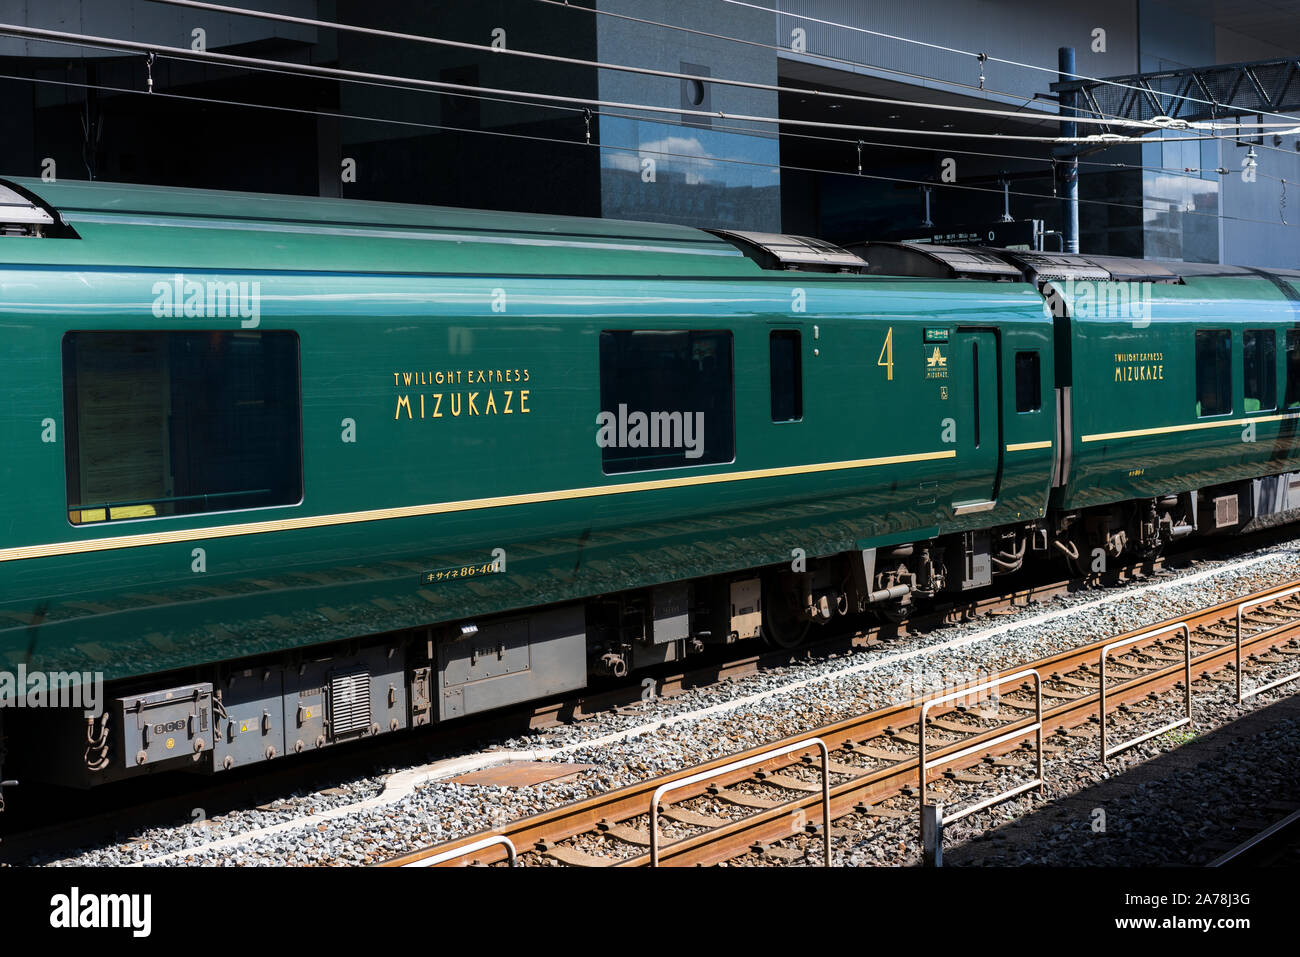 Kyoto / Japan: September 2019: The Twilight Express Mizukaze at the Kyoto main train station. A design sleeper train that is also a hotel for a superi Stock Photo